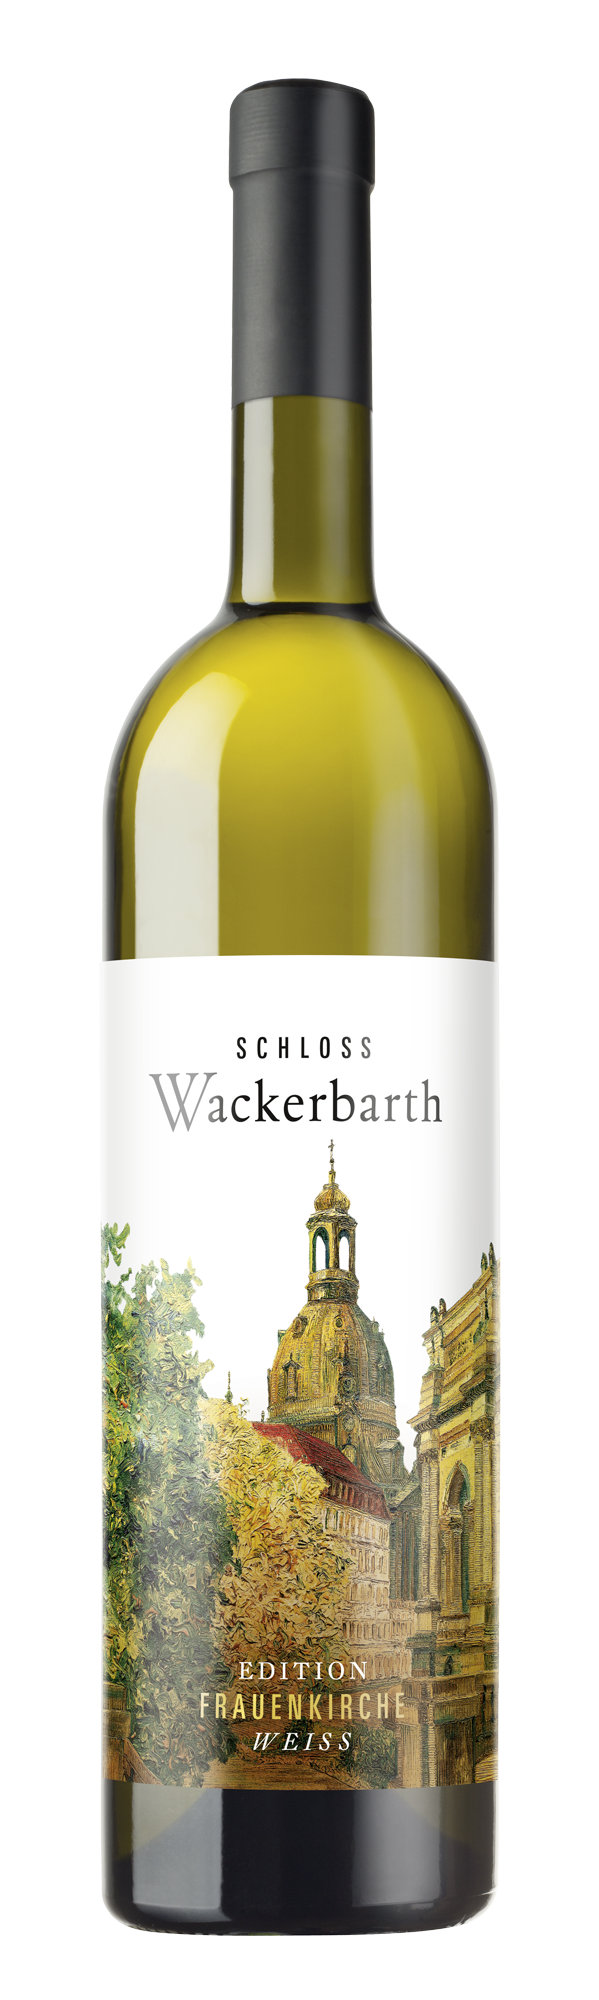 2017er Riesling Edition Frauenkirche